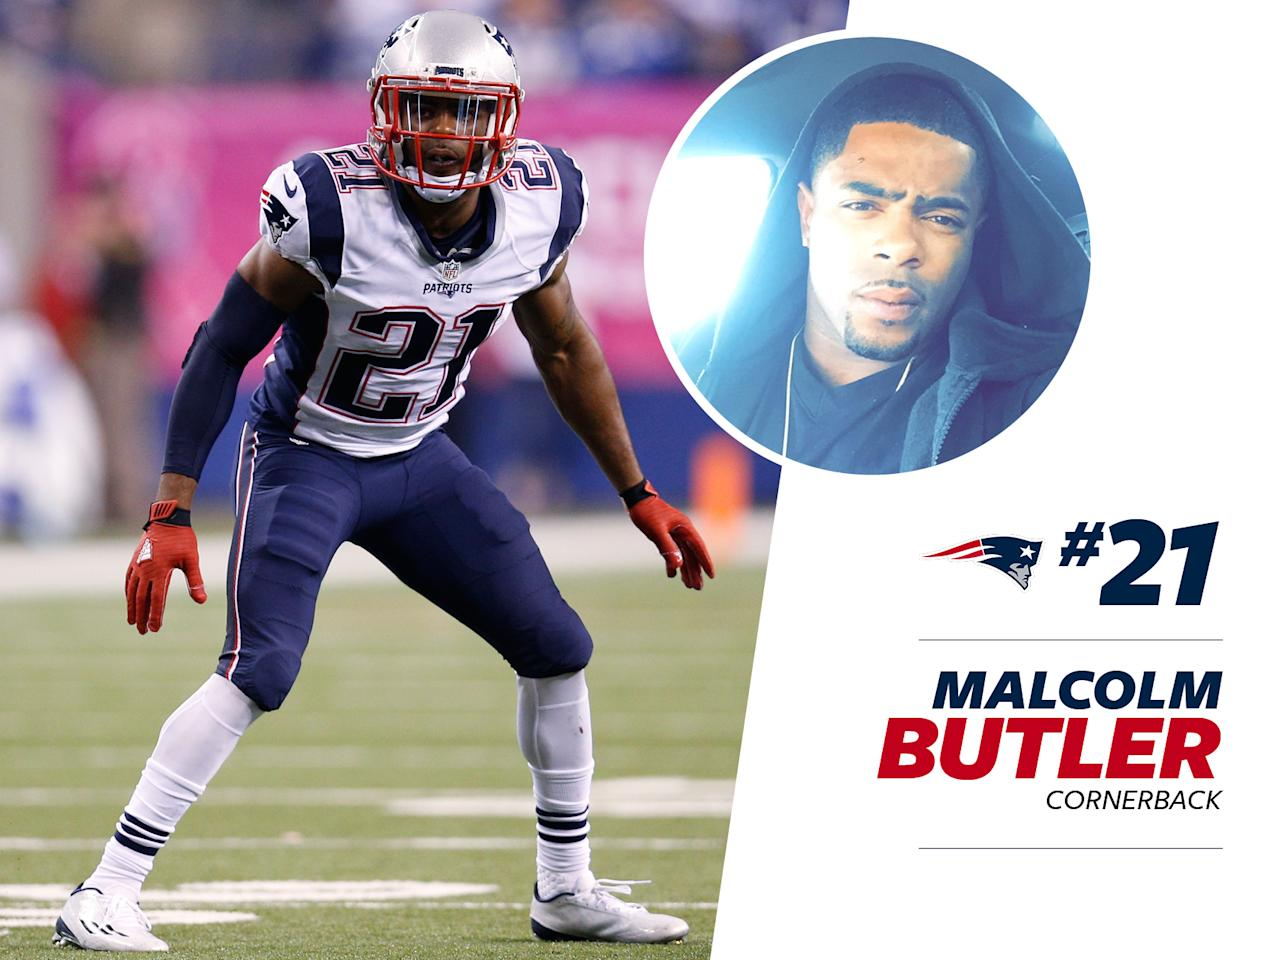 """<p>When Malcolm Butler <a rel=""""nofollow"""" href=""""https://www.instagram.com/p/BFVDAVPA5-3/?taken-by=mac_bz"""">attended</a> 2016's Grammy Awards with teammate Julian Edelman, he looked both sharp and modern in a blue suit accessorized with gold chains and a flashy watch. The award show red carpet may have belonged to fashionable musicians, but Butler held his own. </p>"""